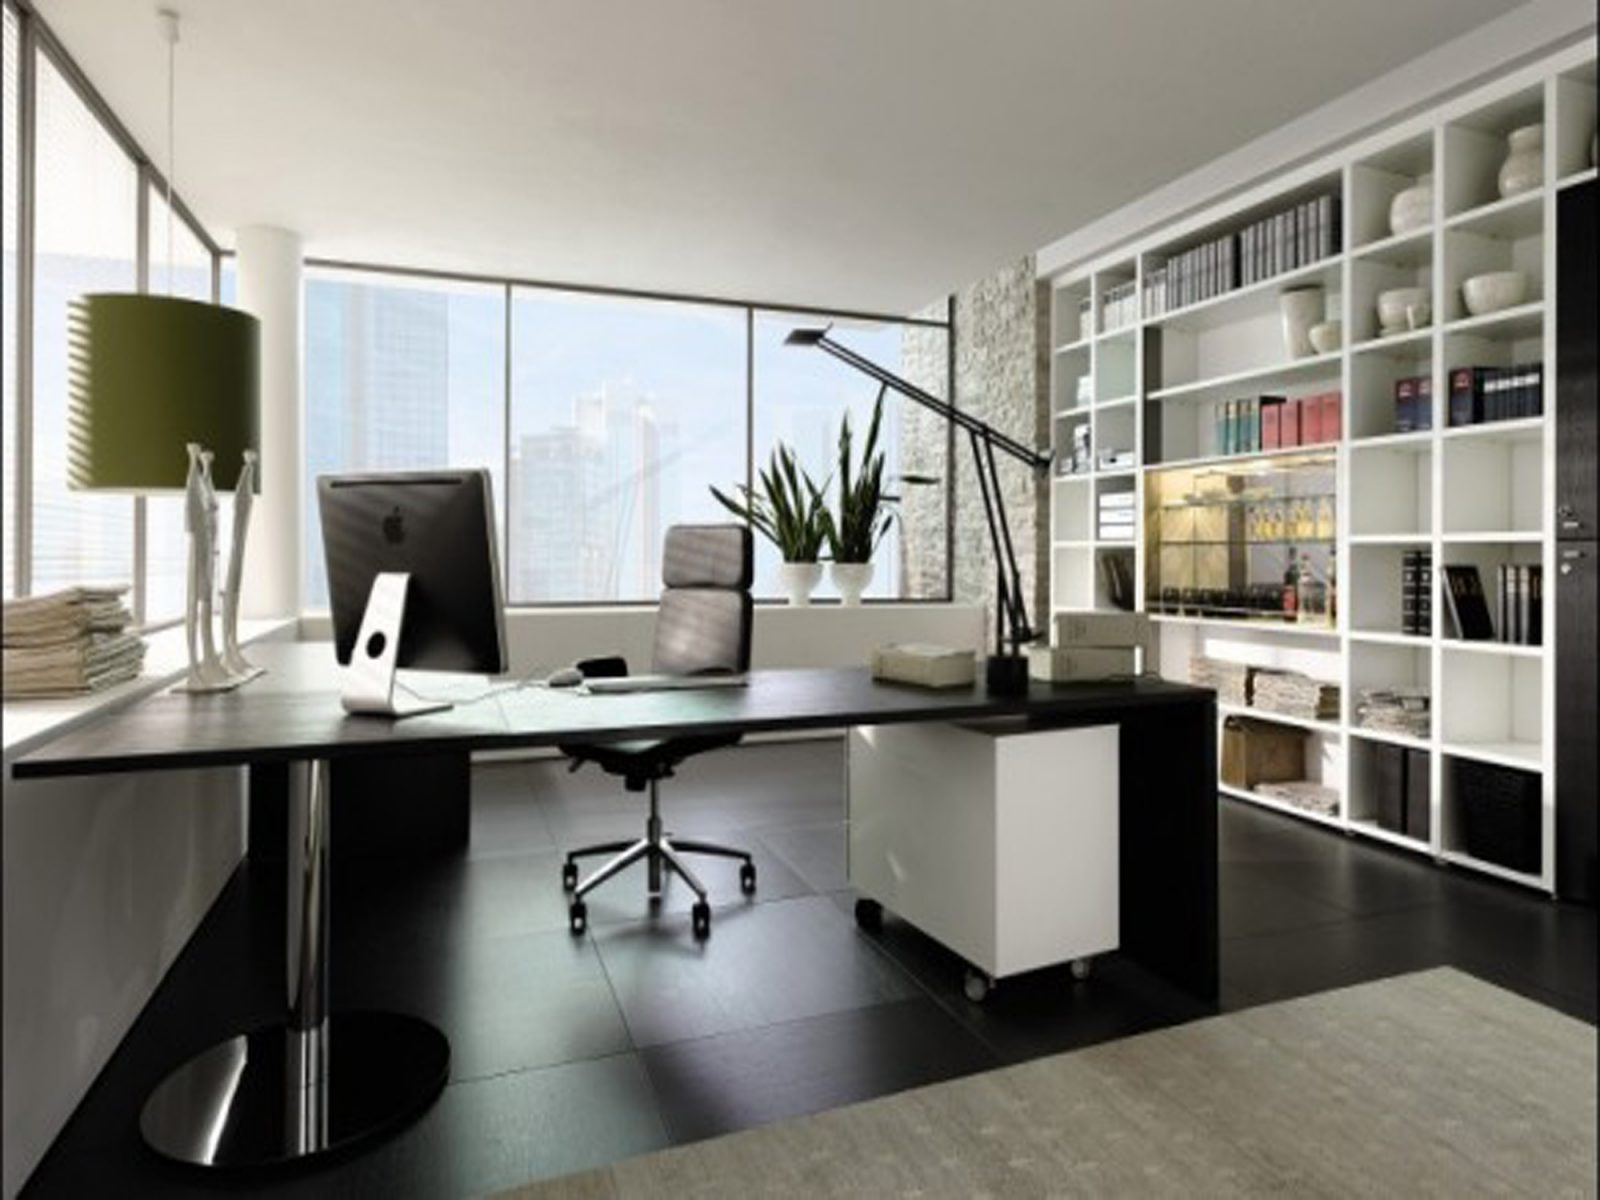 Good Office Design Can Alleviate Stress and Increase Productivity